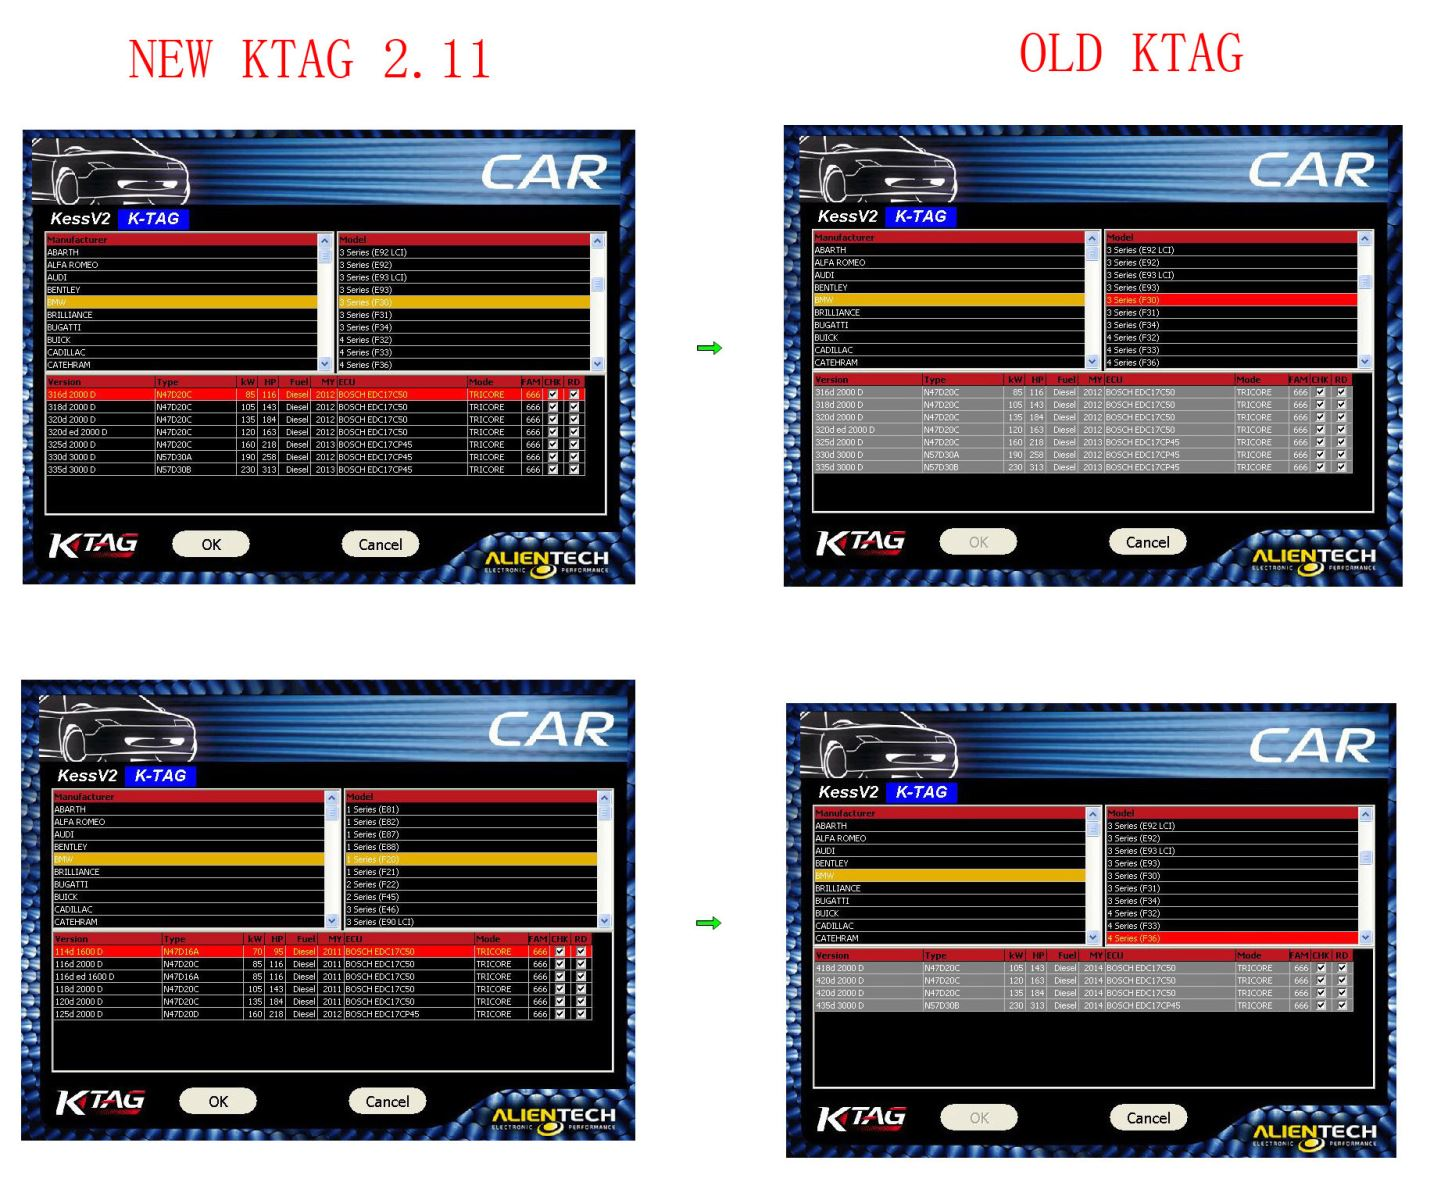 New KTAG Compare to Old KTAG